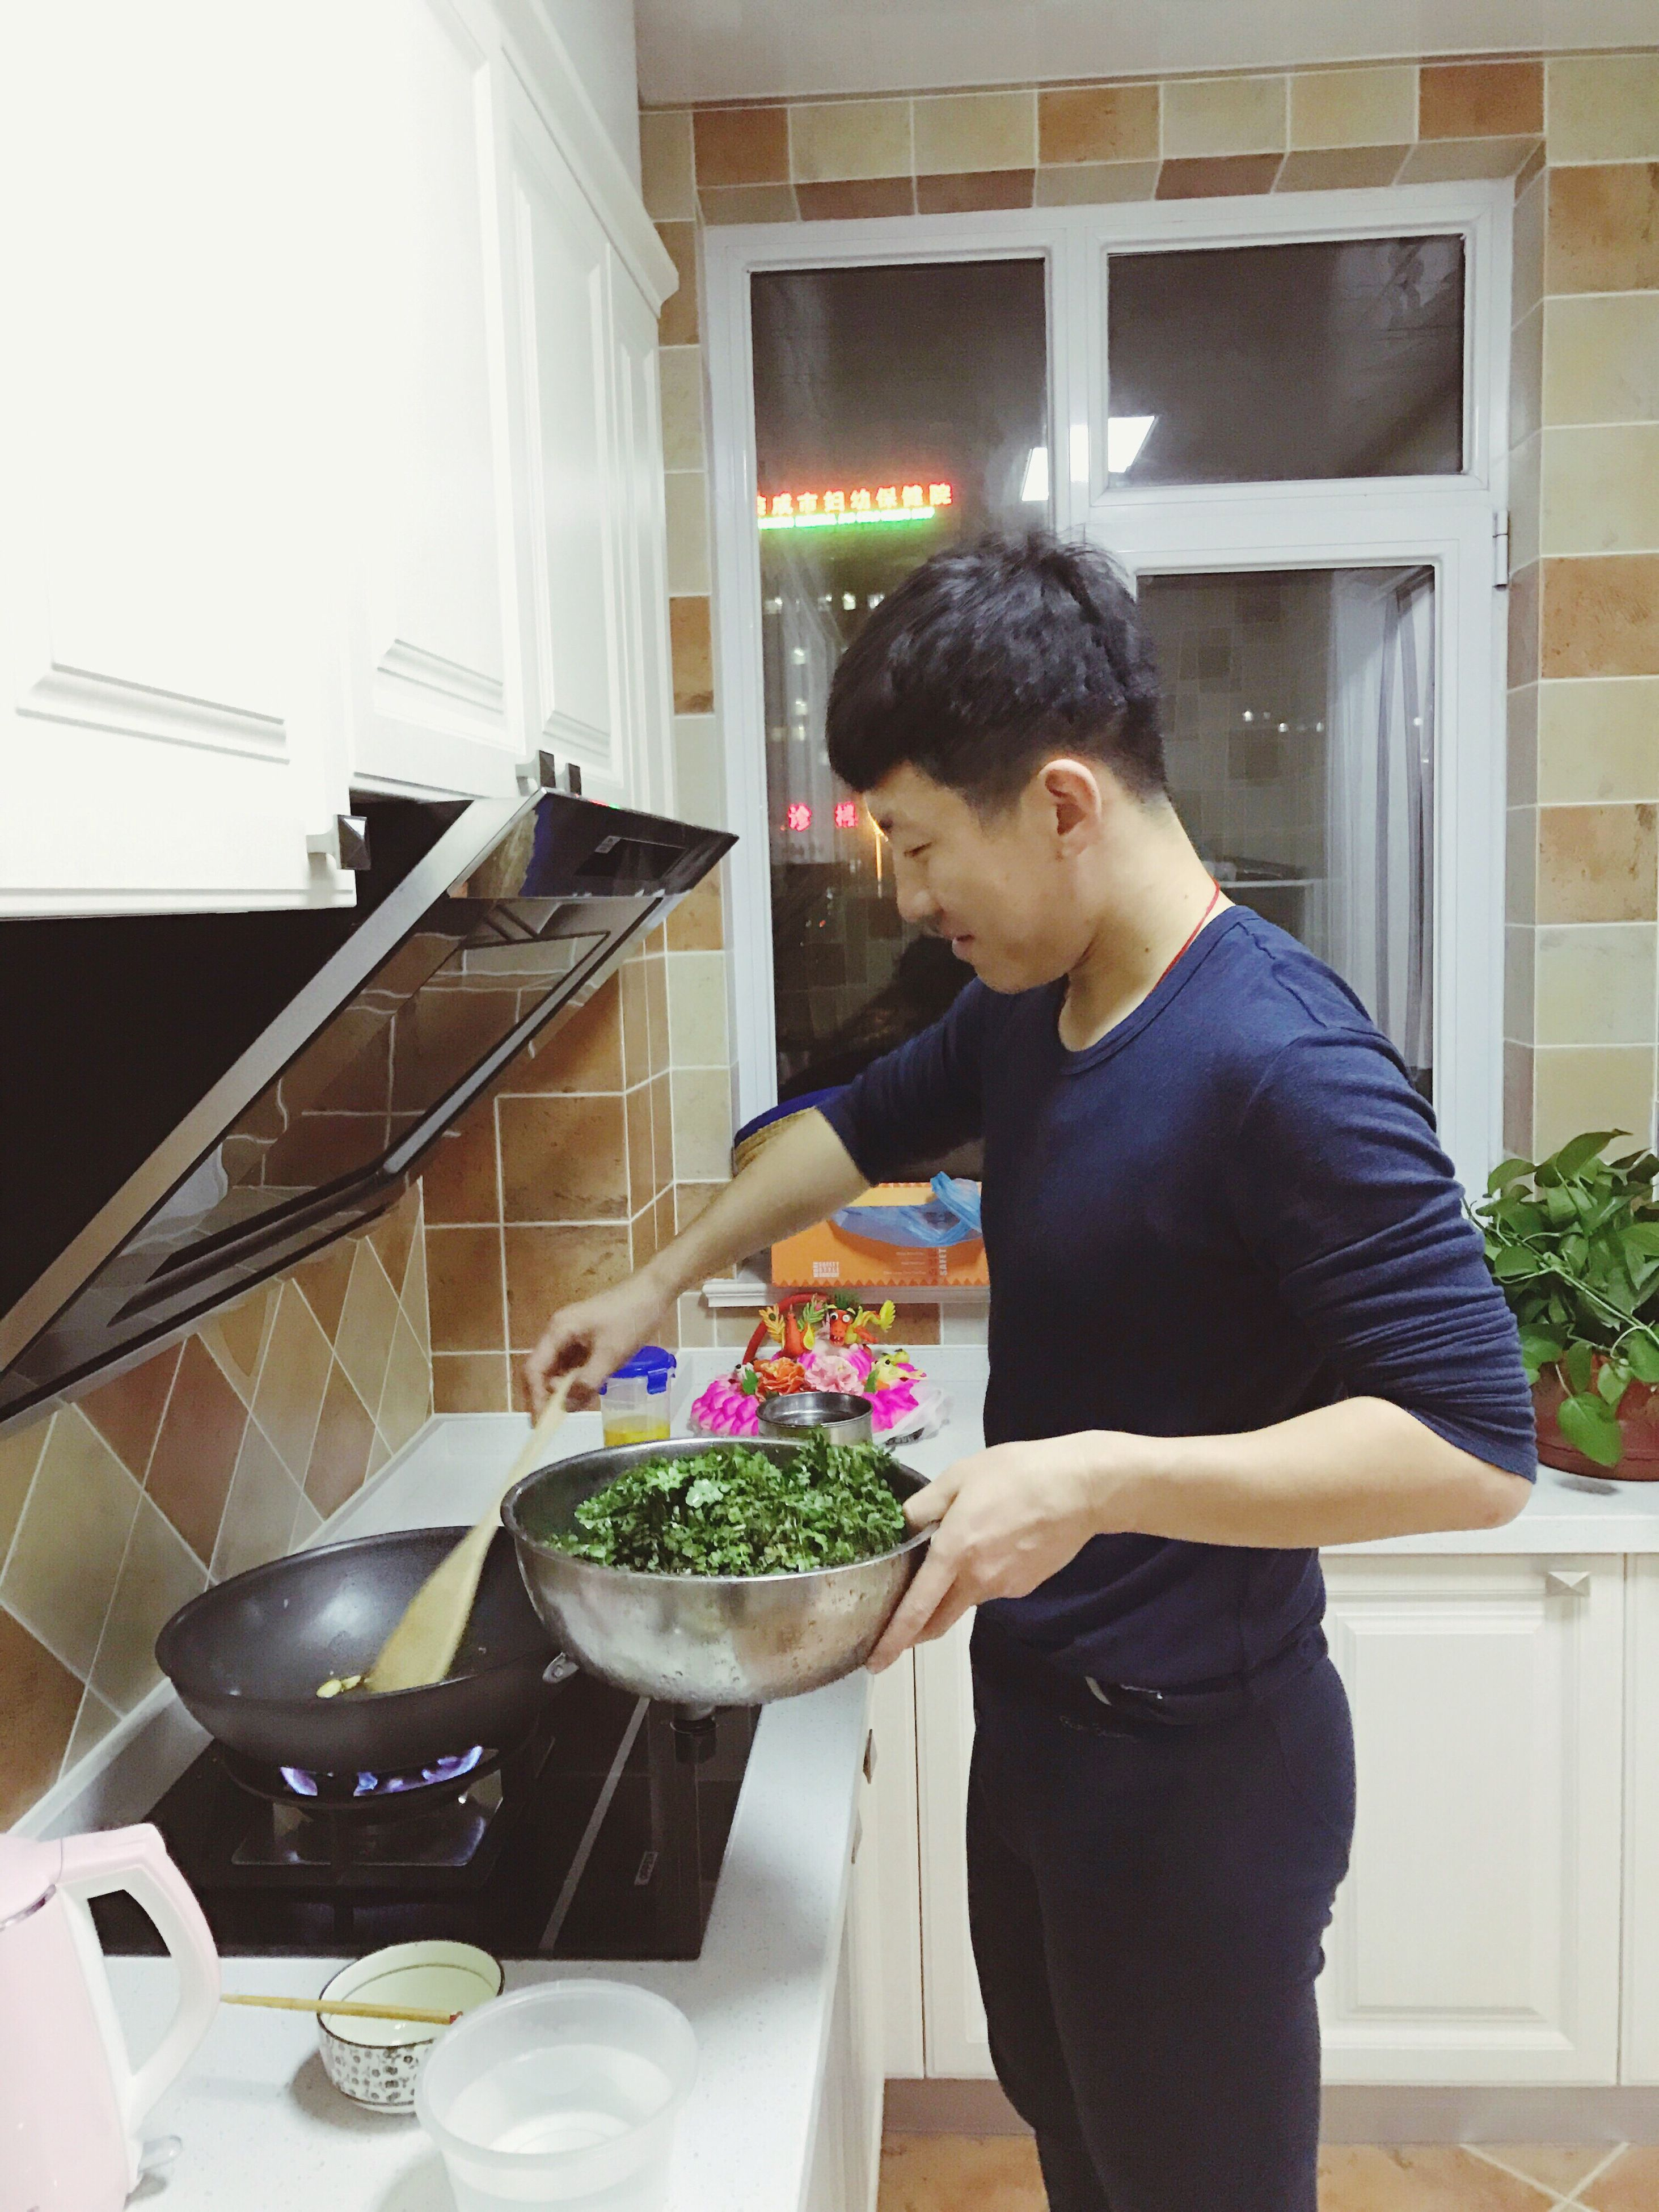 indoors, one person, one man only, domestic kitchen, adults only, kitchen, only men, domestic room, people, food, adult, working, domestic life, freshness, day